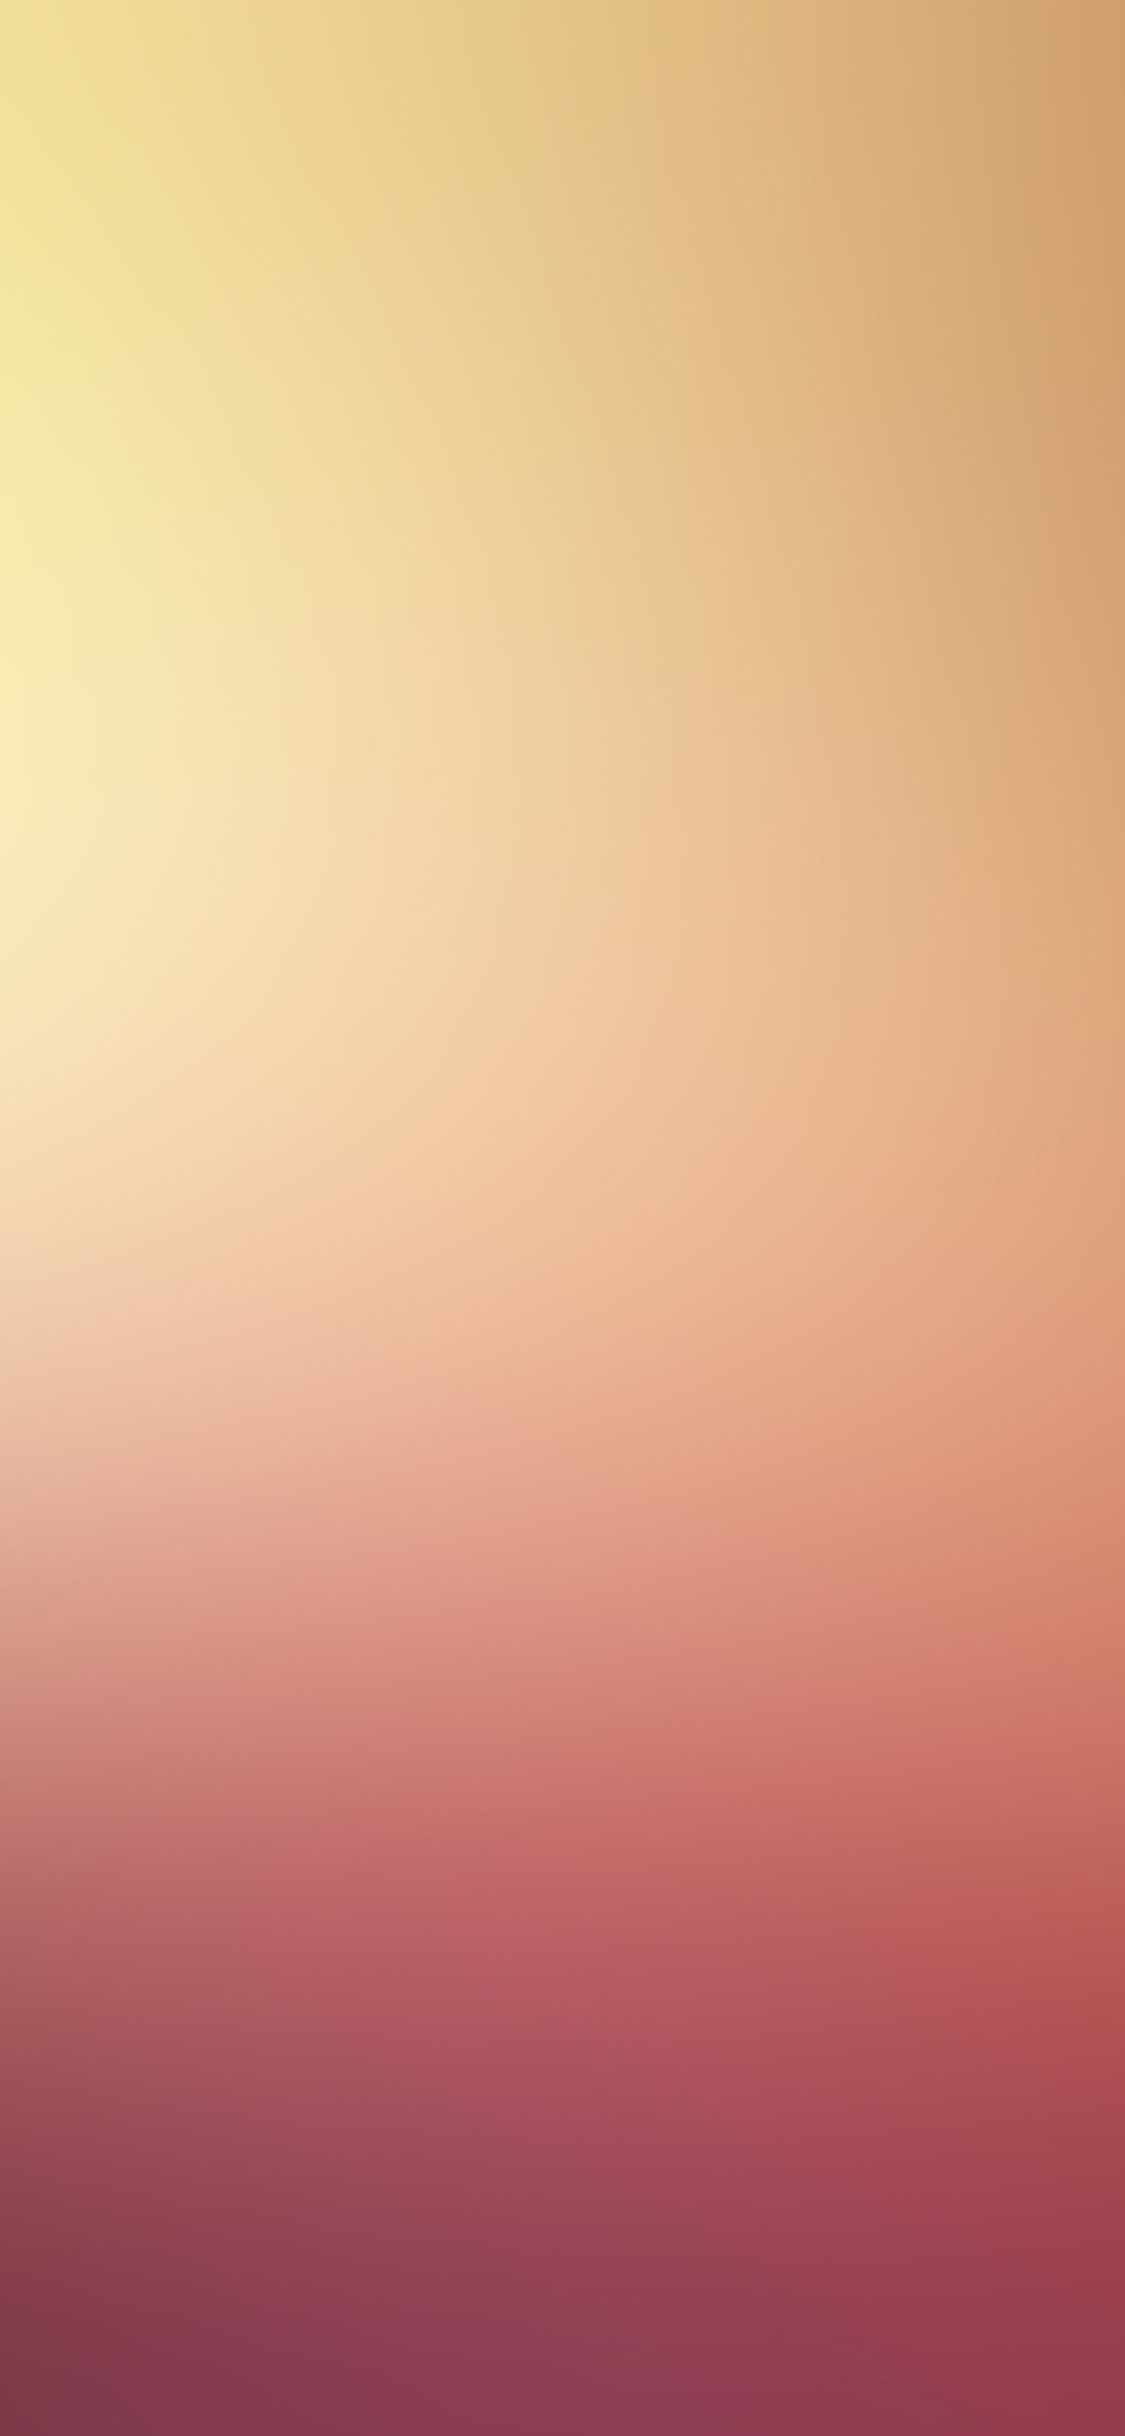 iPhoneXpapers.com-Apple-iPhone-wallpaper-sd59-shiny-morning-sunlight-gradation-blur